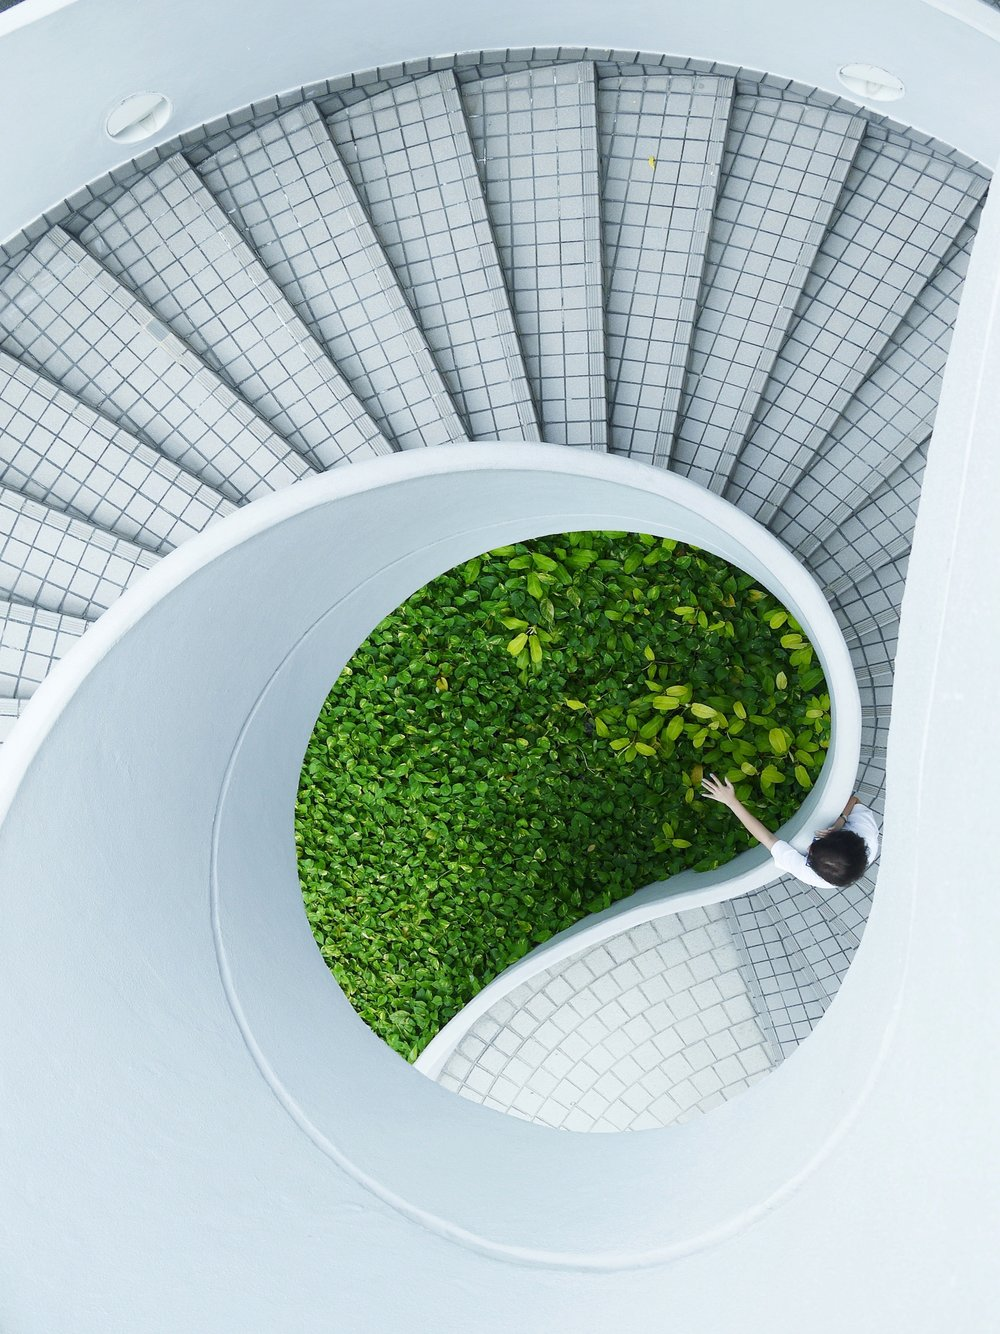 - Make Lasting Environmental Impact by Leveraging new Technologies in new ways.